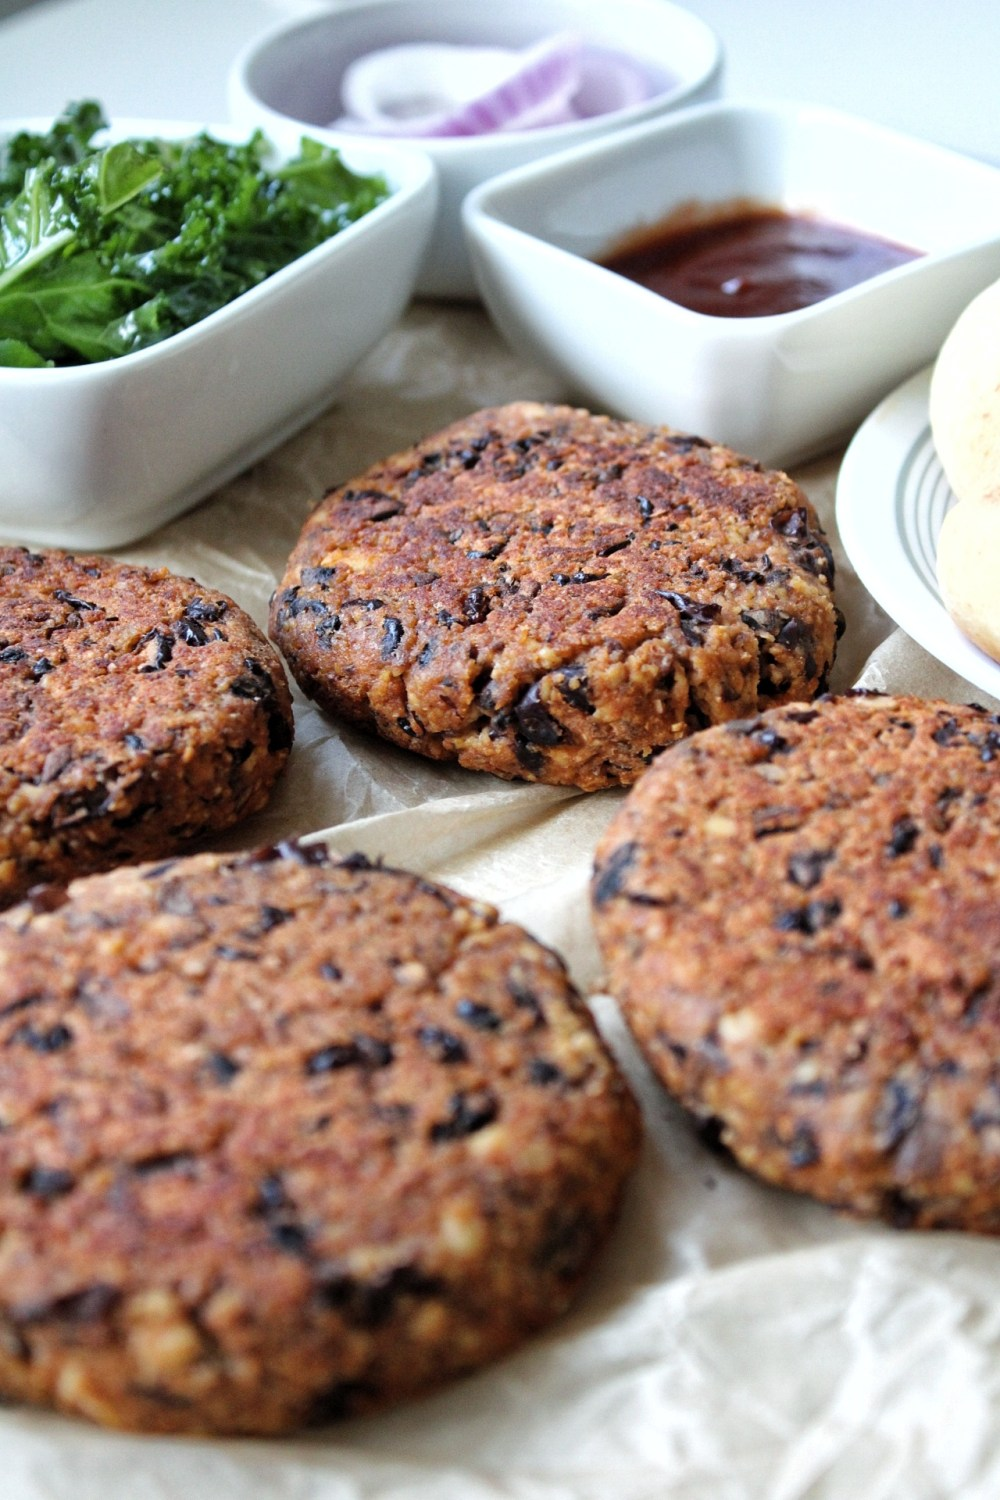 Cooked veggie burger with sides and sauces